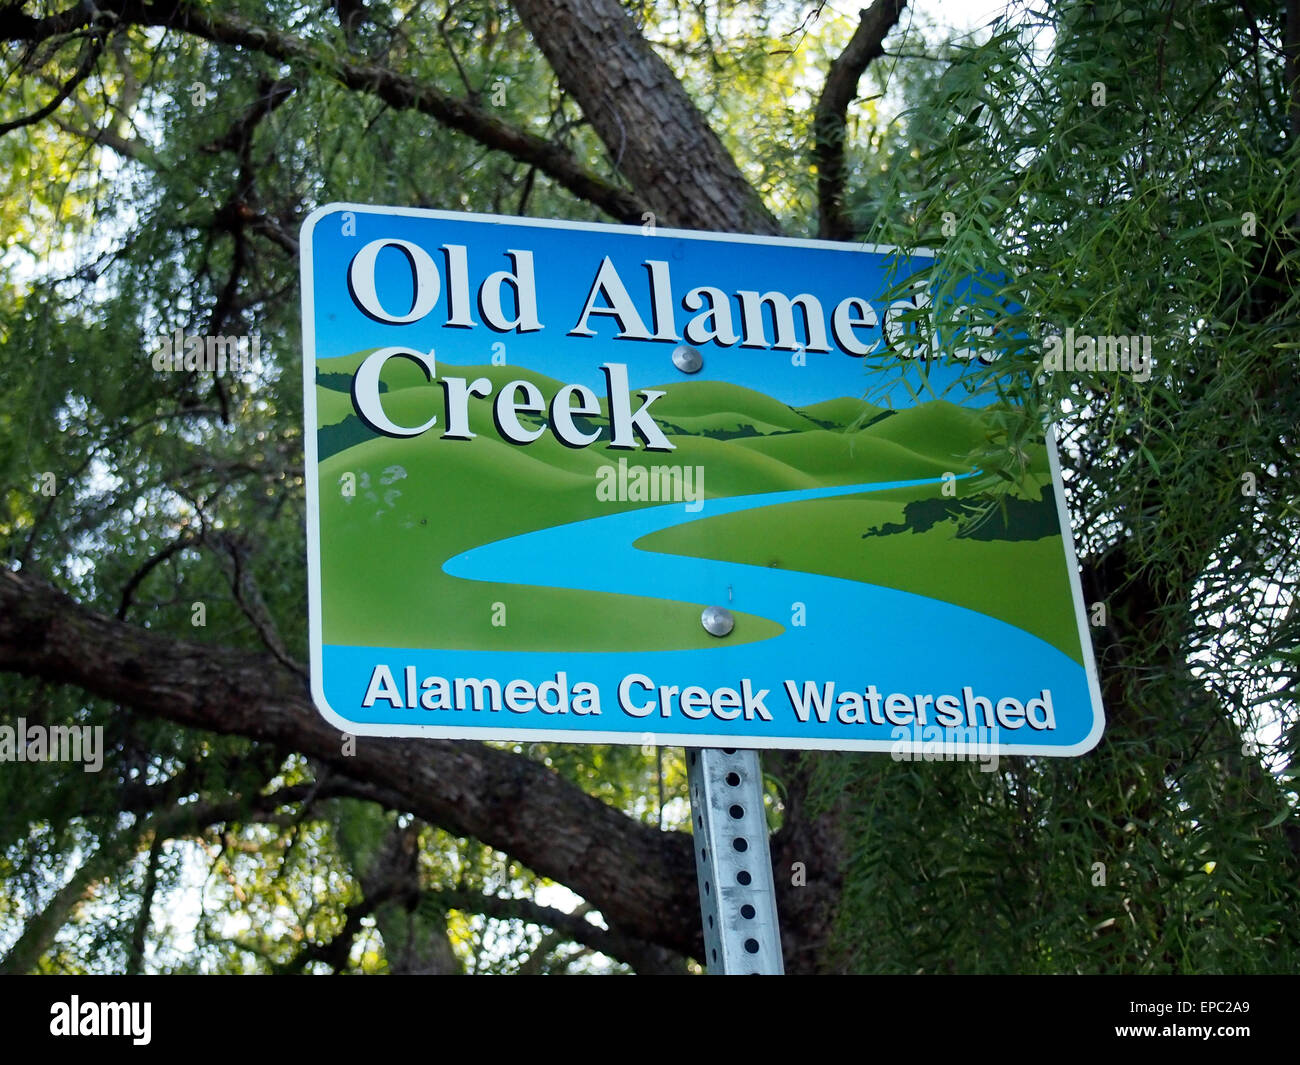 Old Alameda Creek Watershed sign, Union City, CA - Stock Image